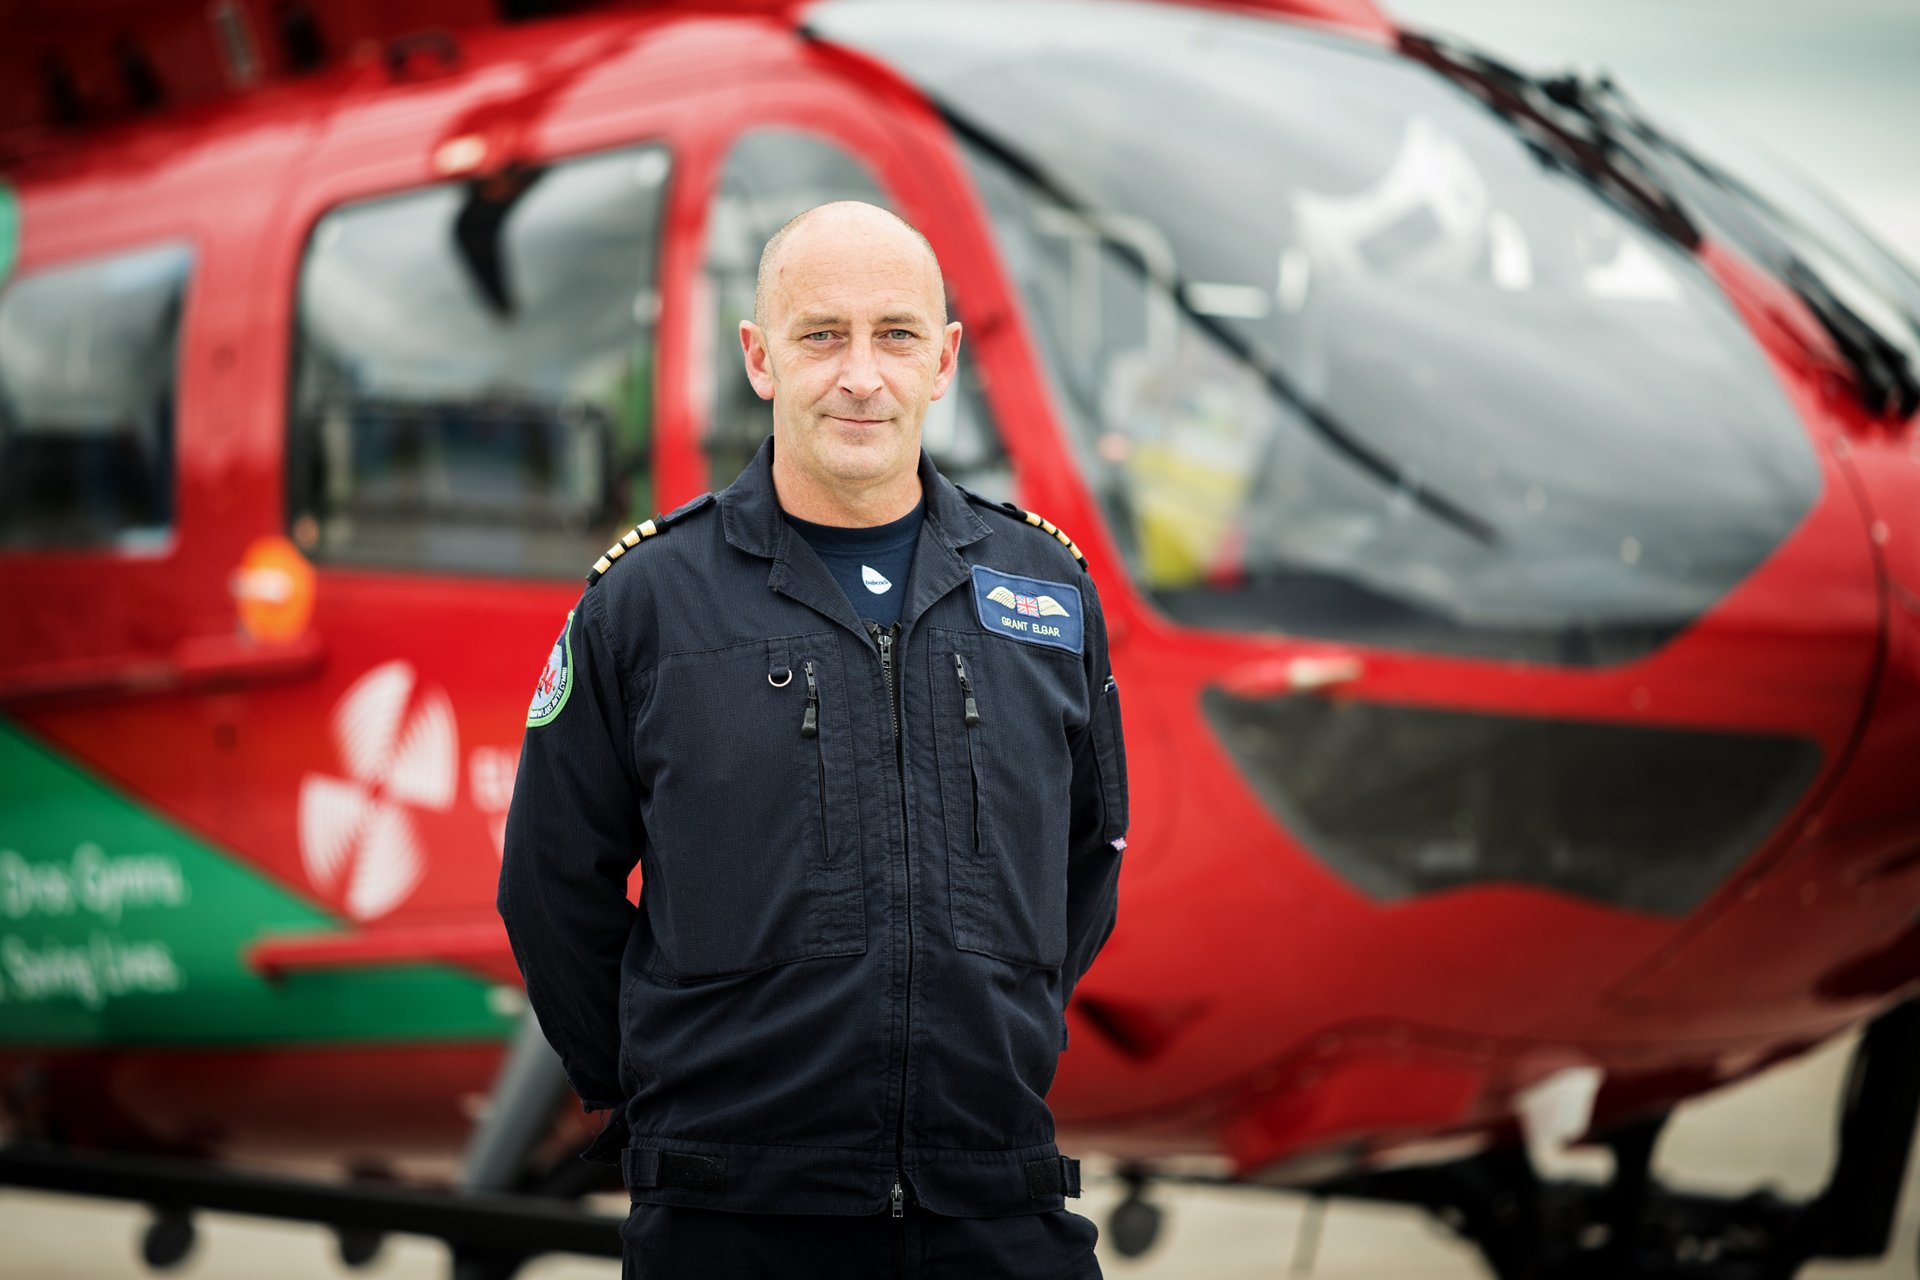 As only the third HEMS operator in the UK to use the twin-engine H145, WAA puts their 鈥渇our dragons鈥� to use providing primary care services for the Welsh people.